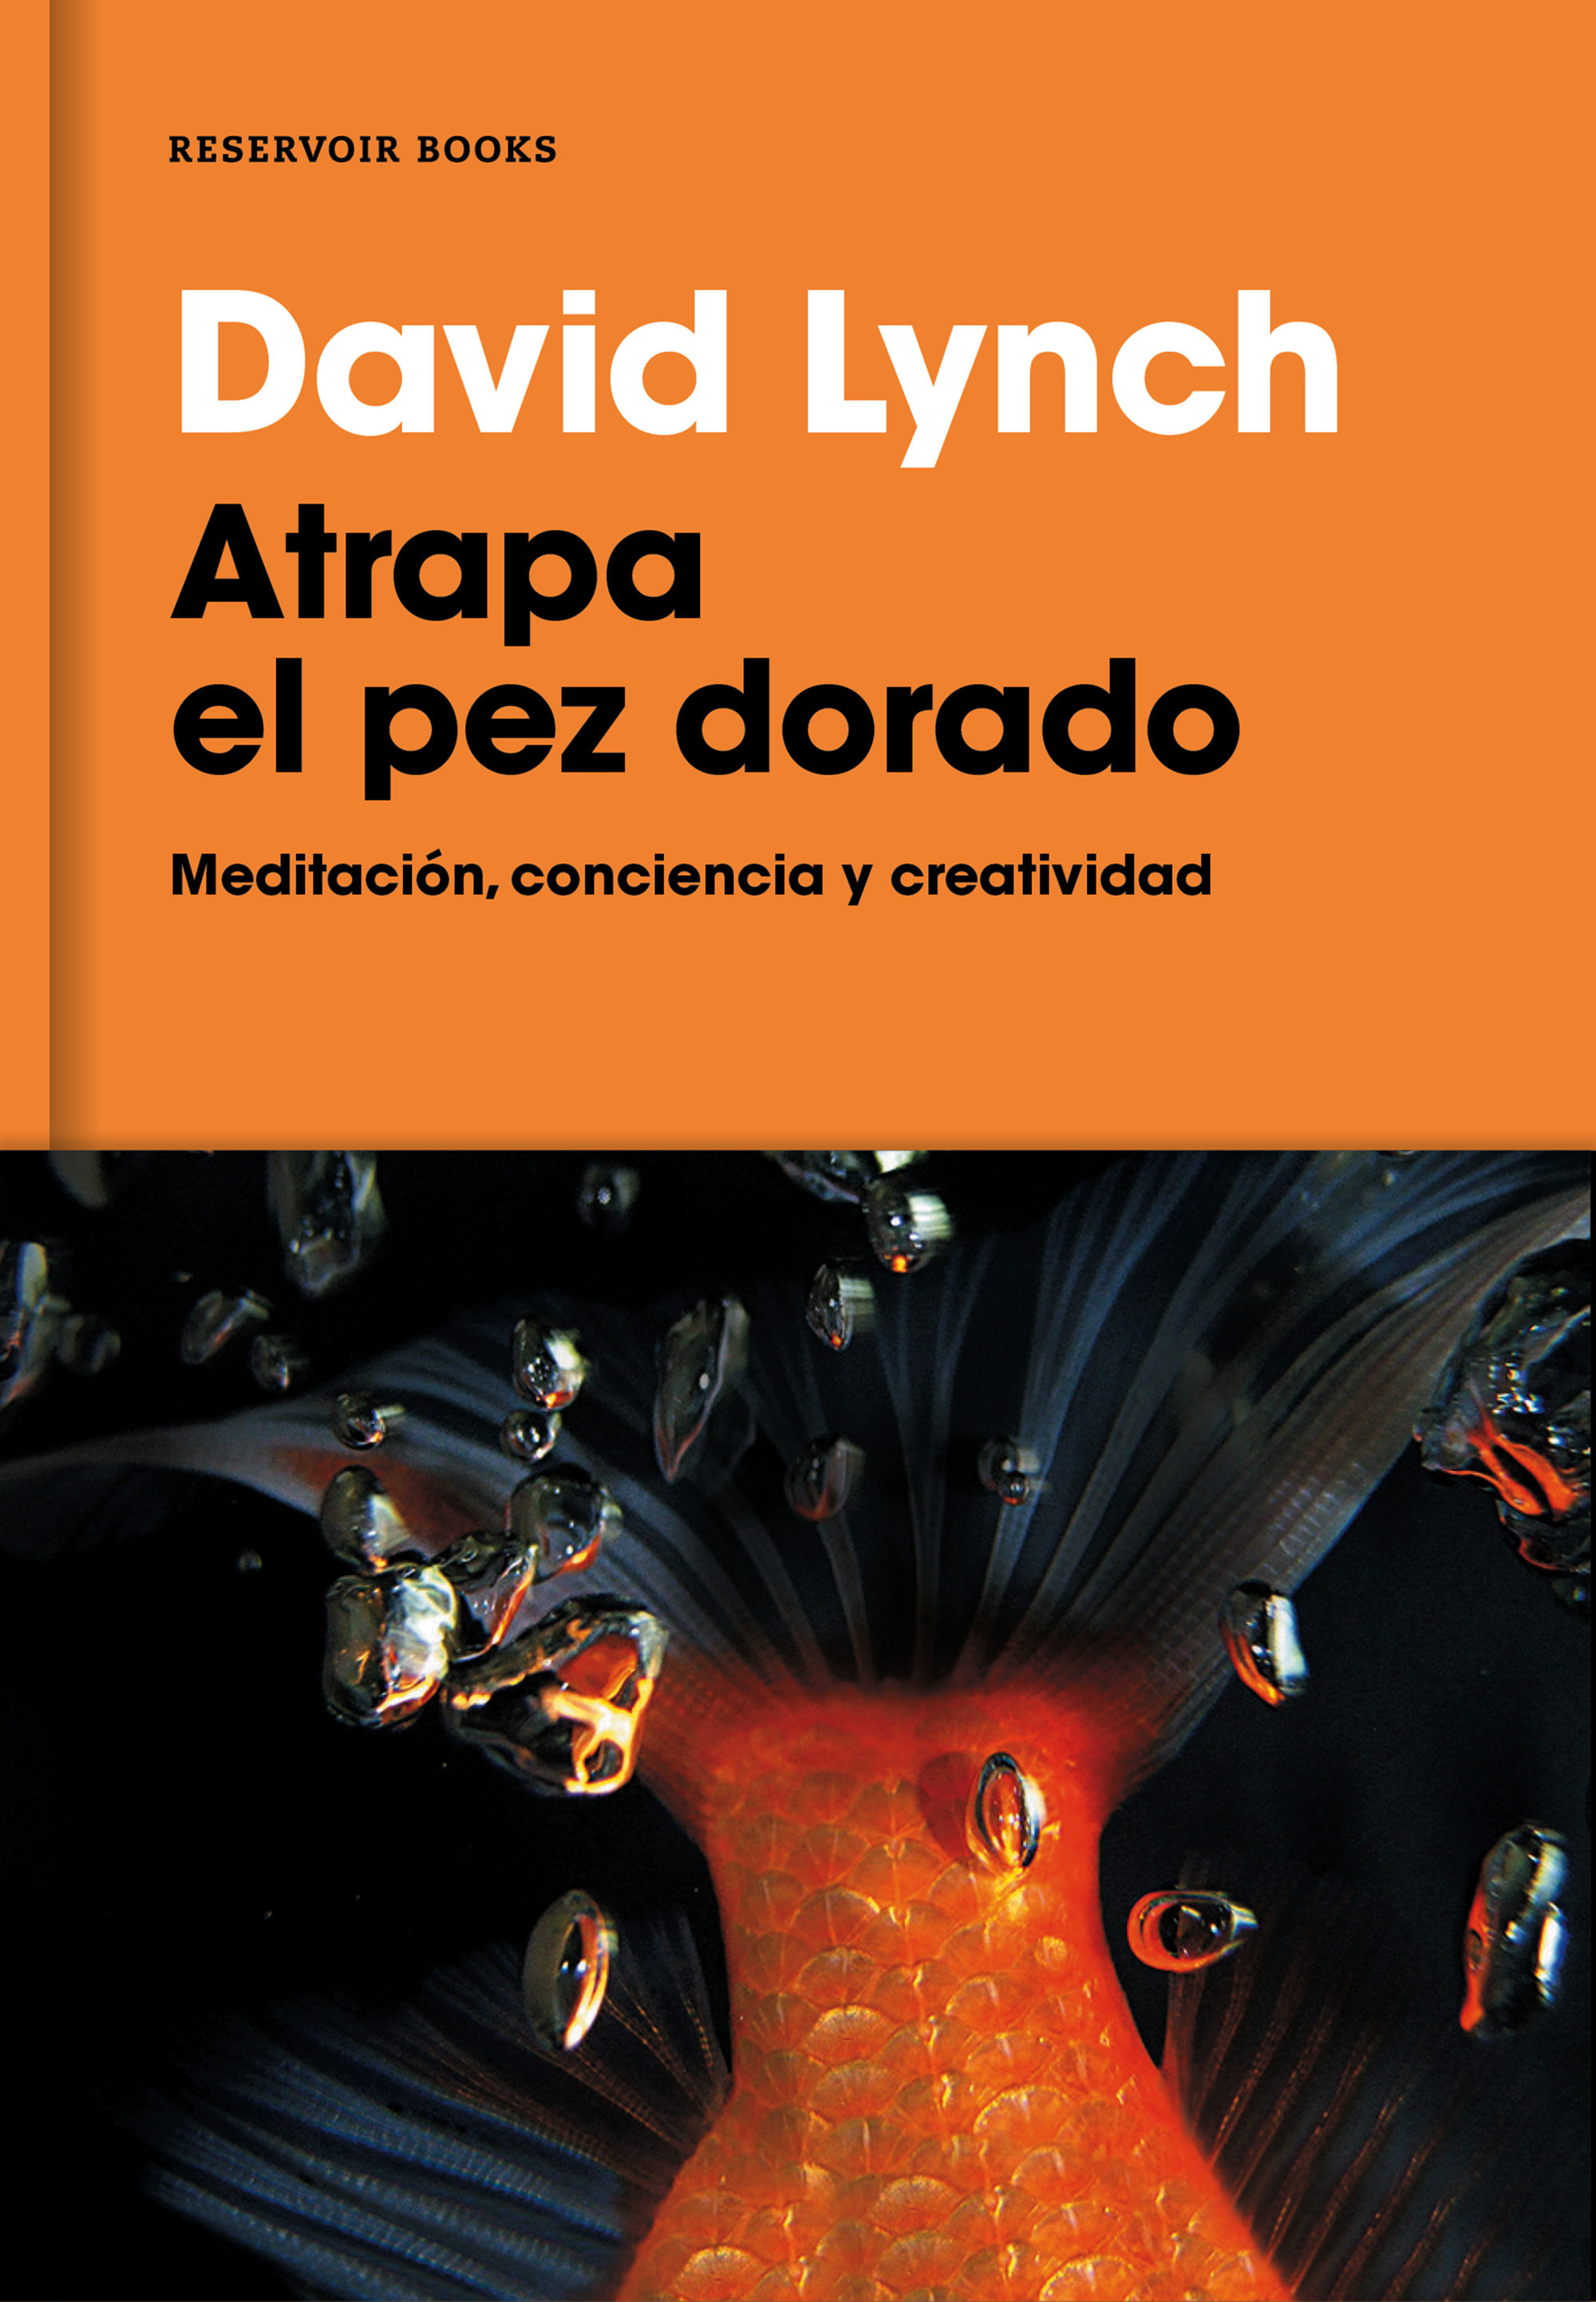 Big Fish Libro David Lynch Atrapando El Pez Gordo Culturaca